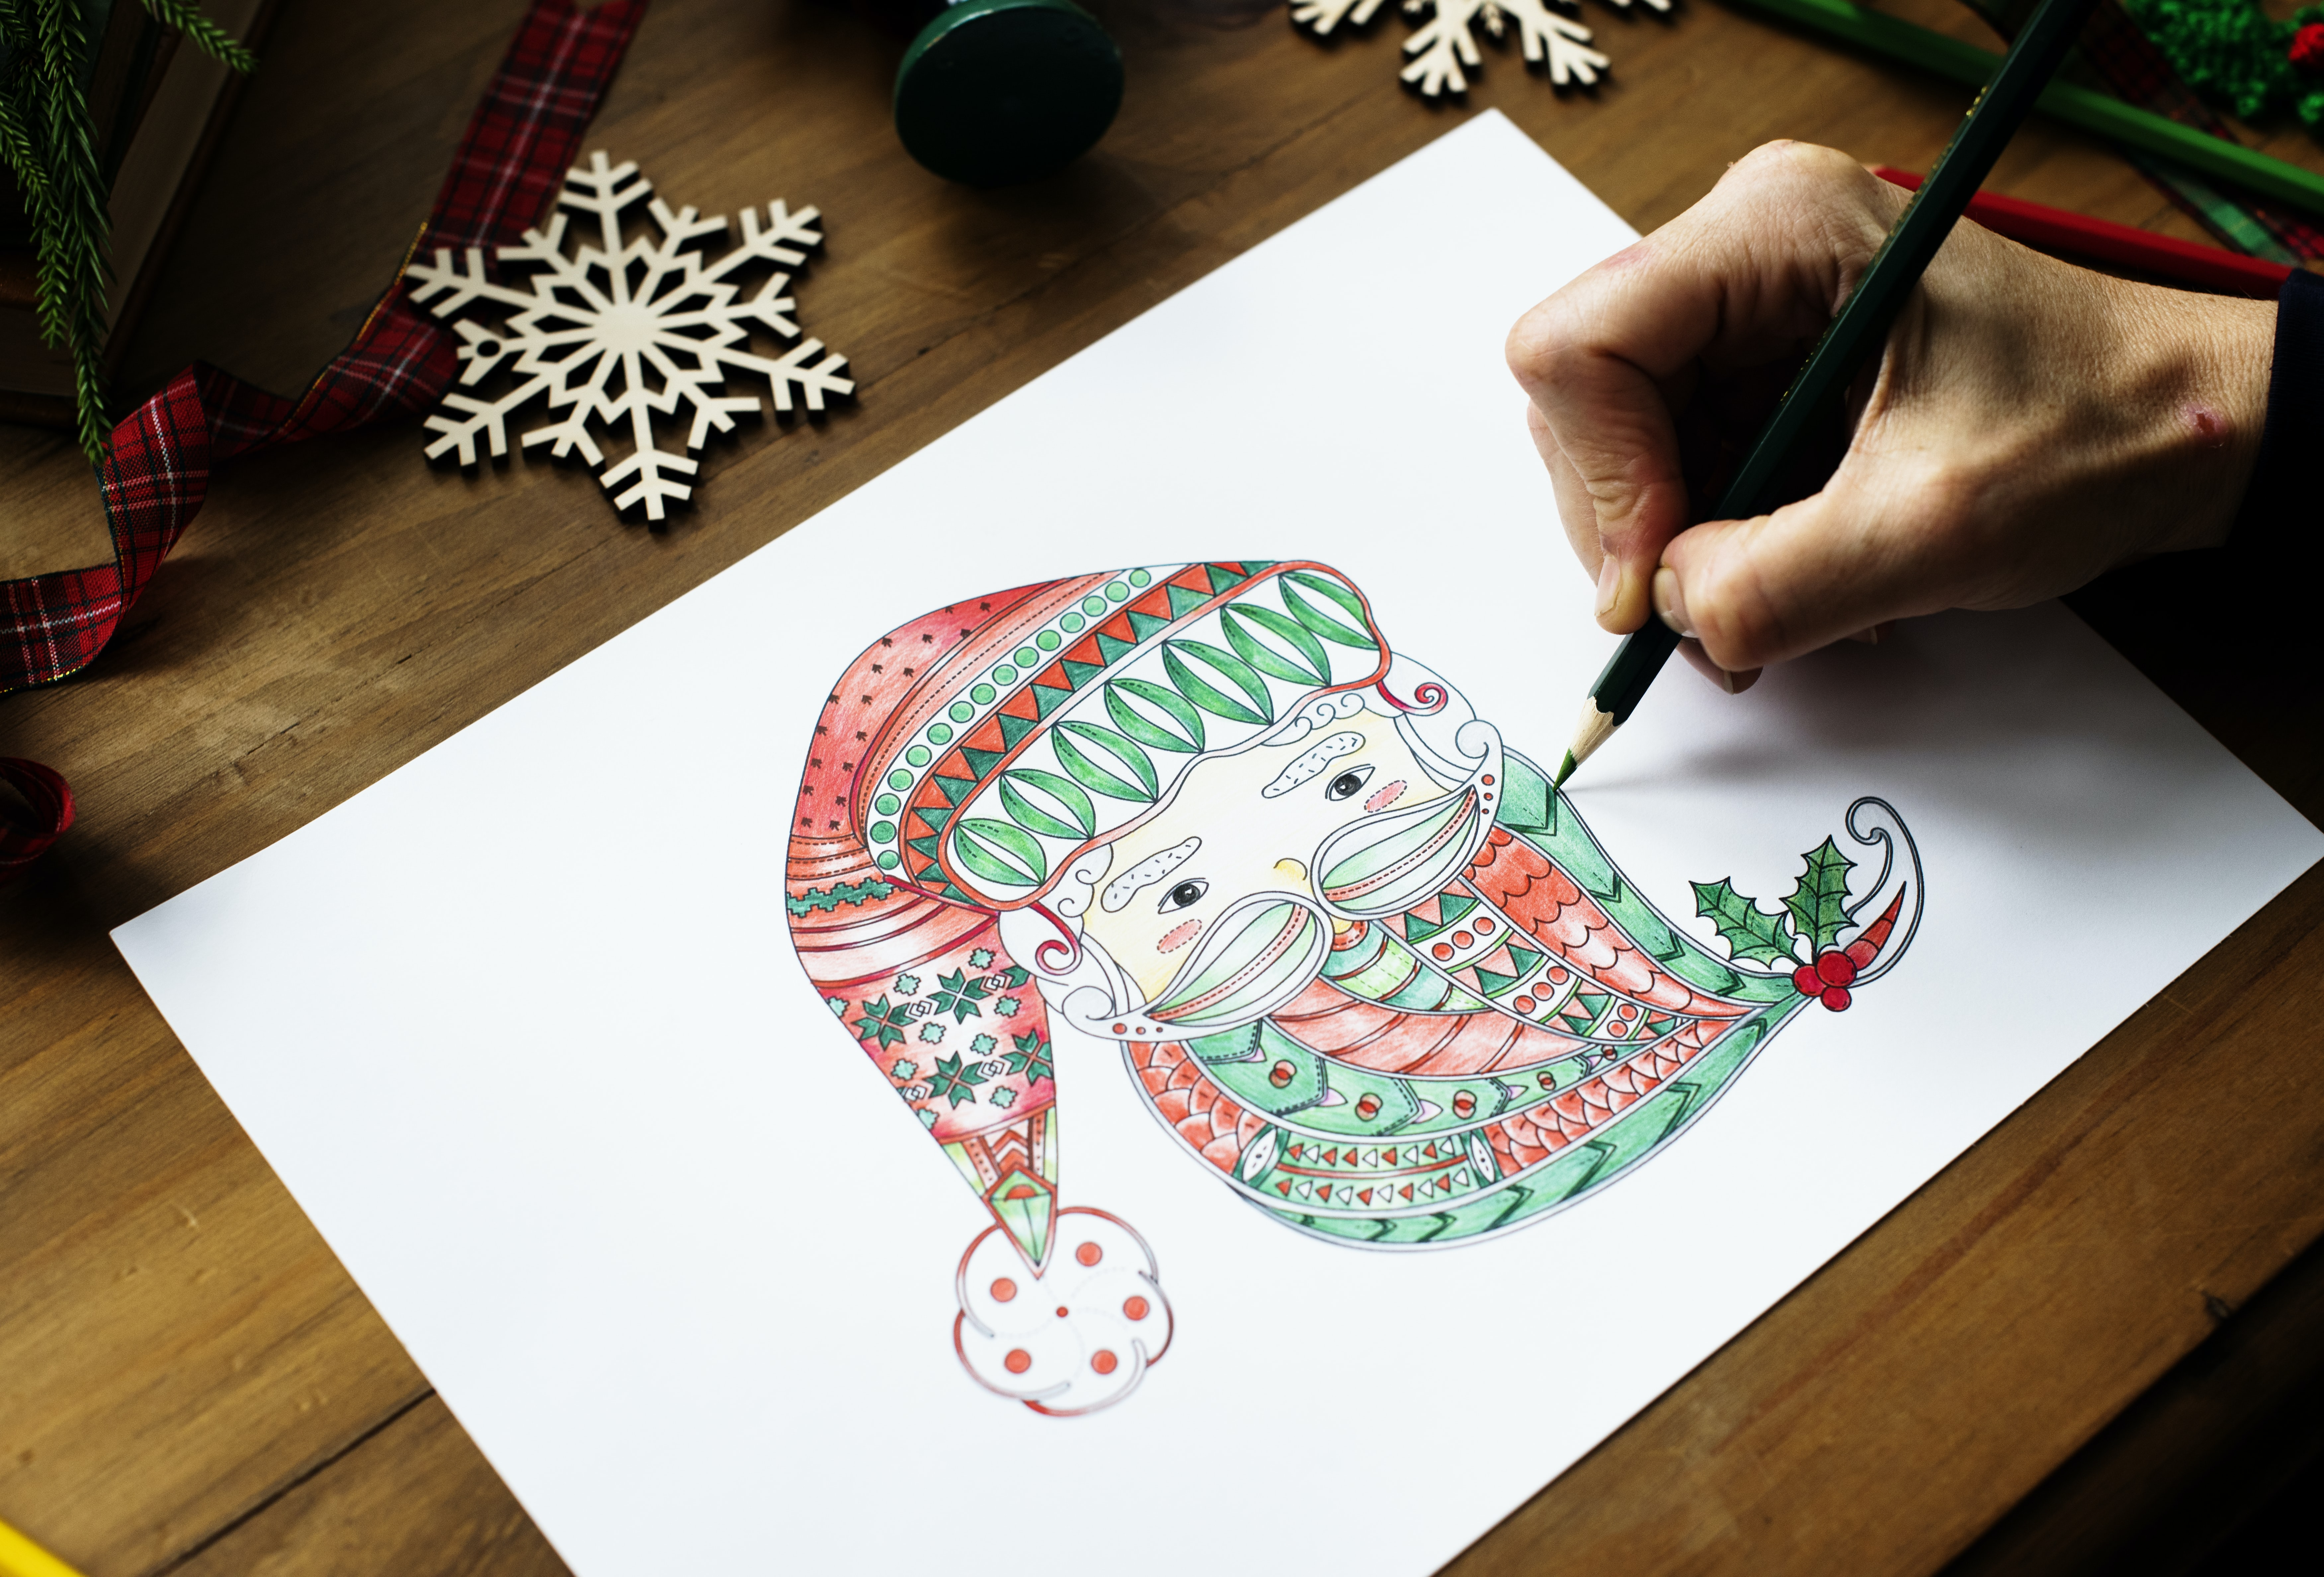 person draws Santa Claus face